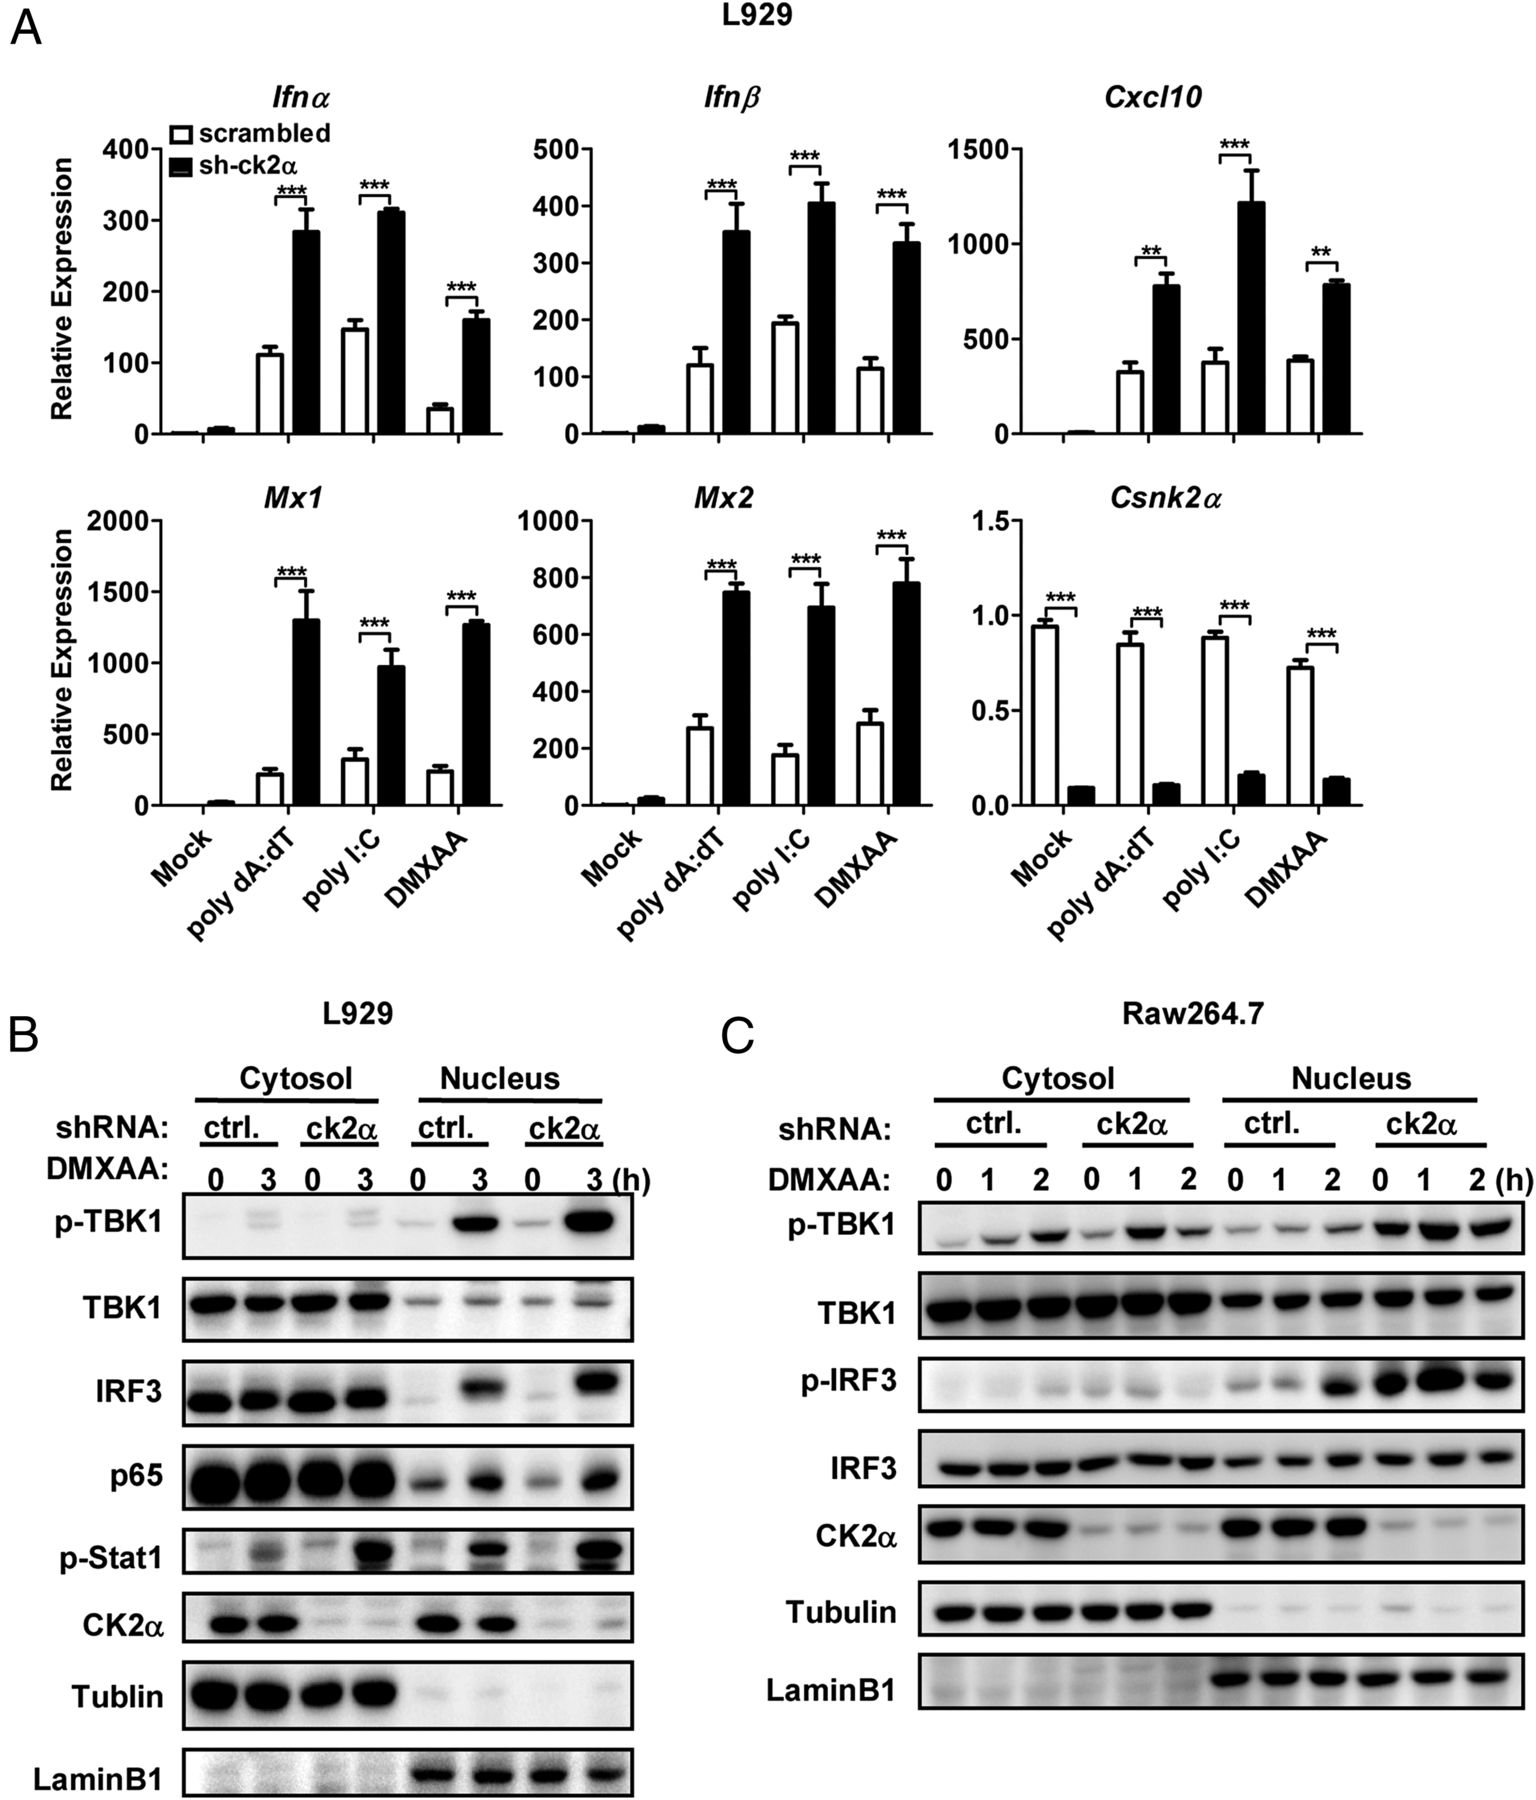 DNA mobility shift binding assay and analysis of dT to dA